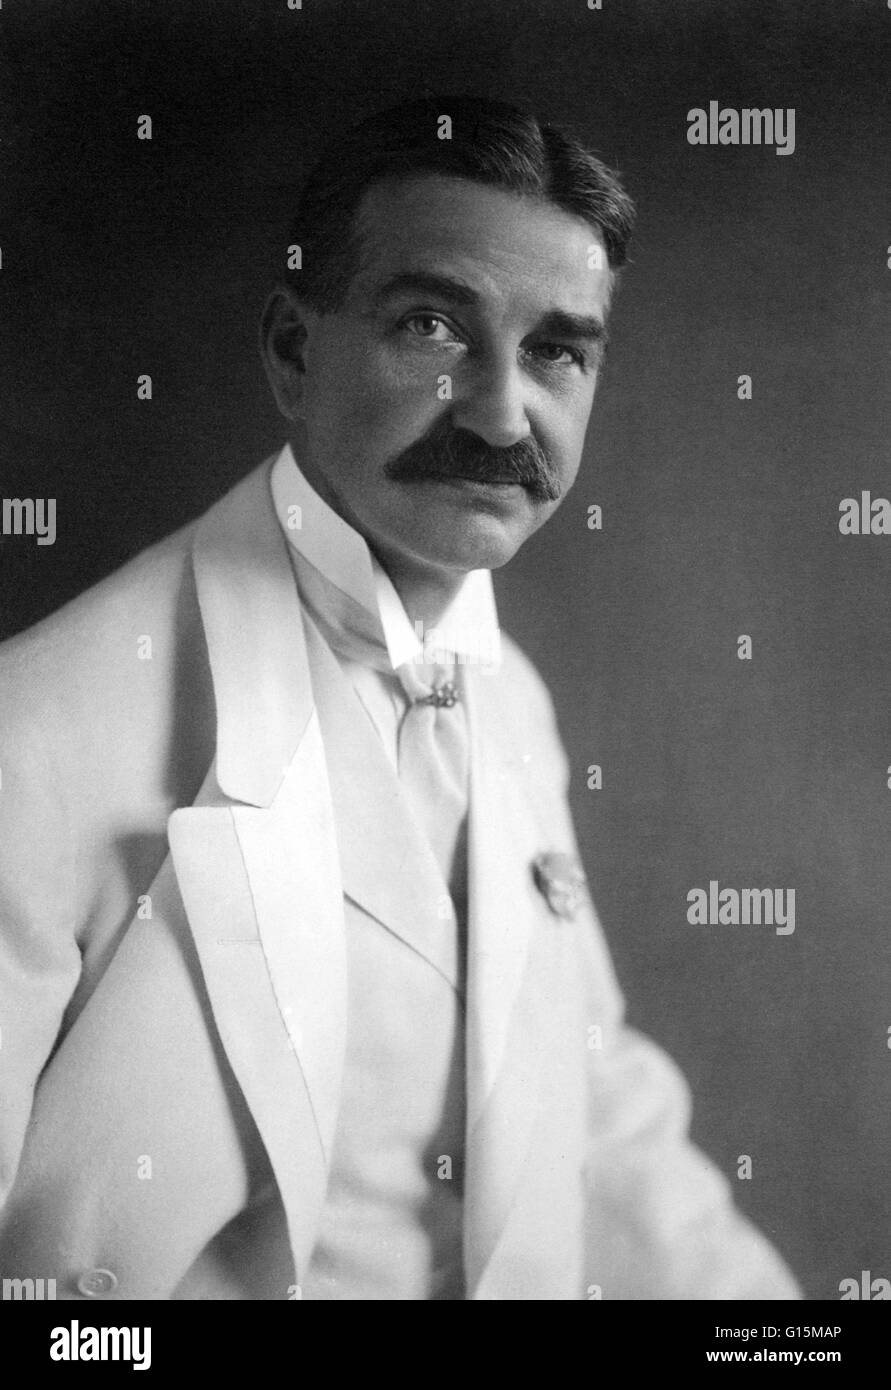 Lyman Frank Baum (1856-1919) was an American author of children's books, best known for writing The Wonderful - Stock Image